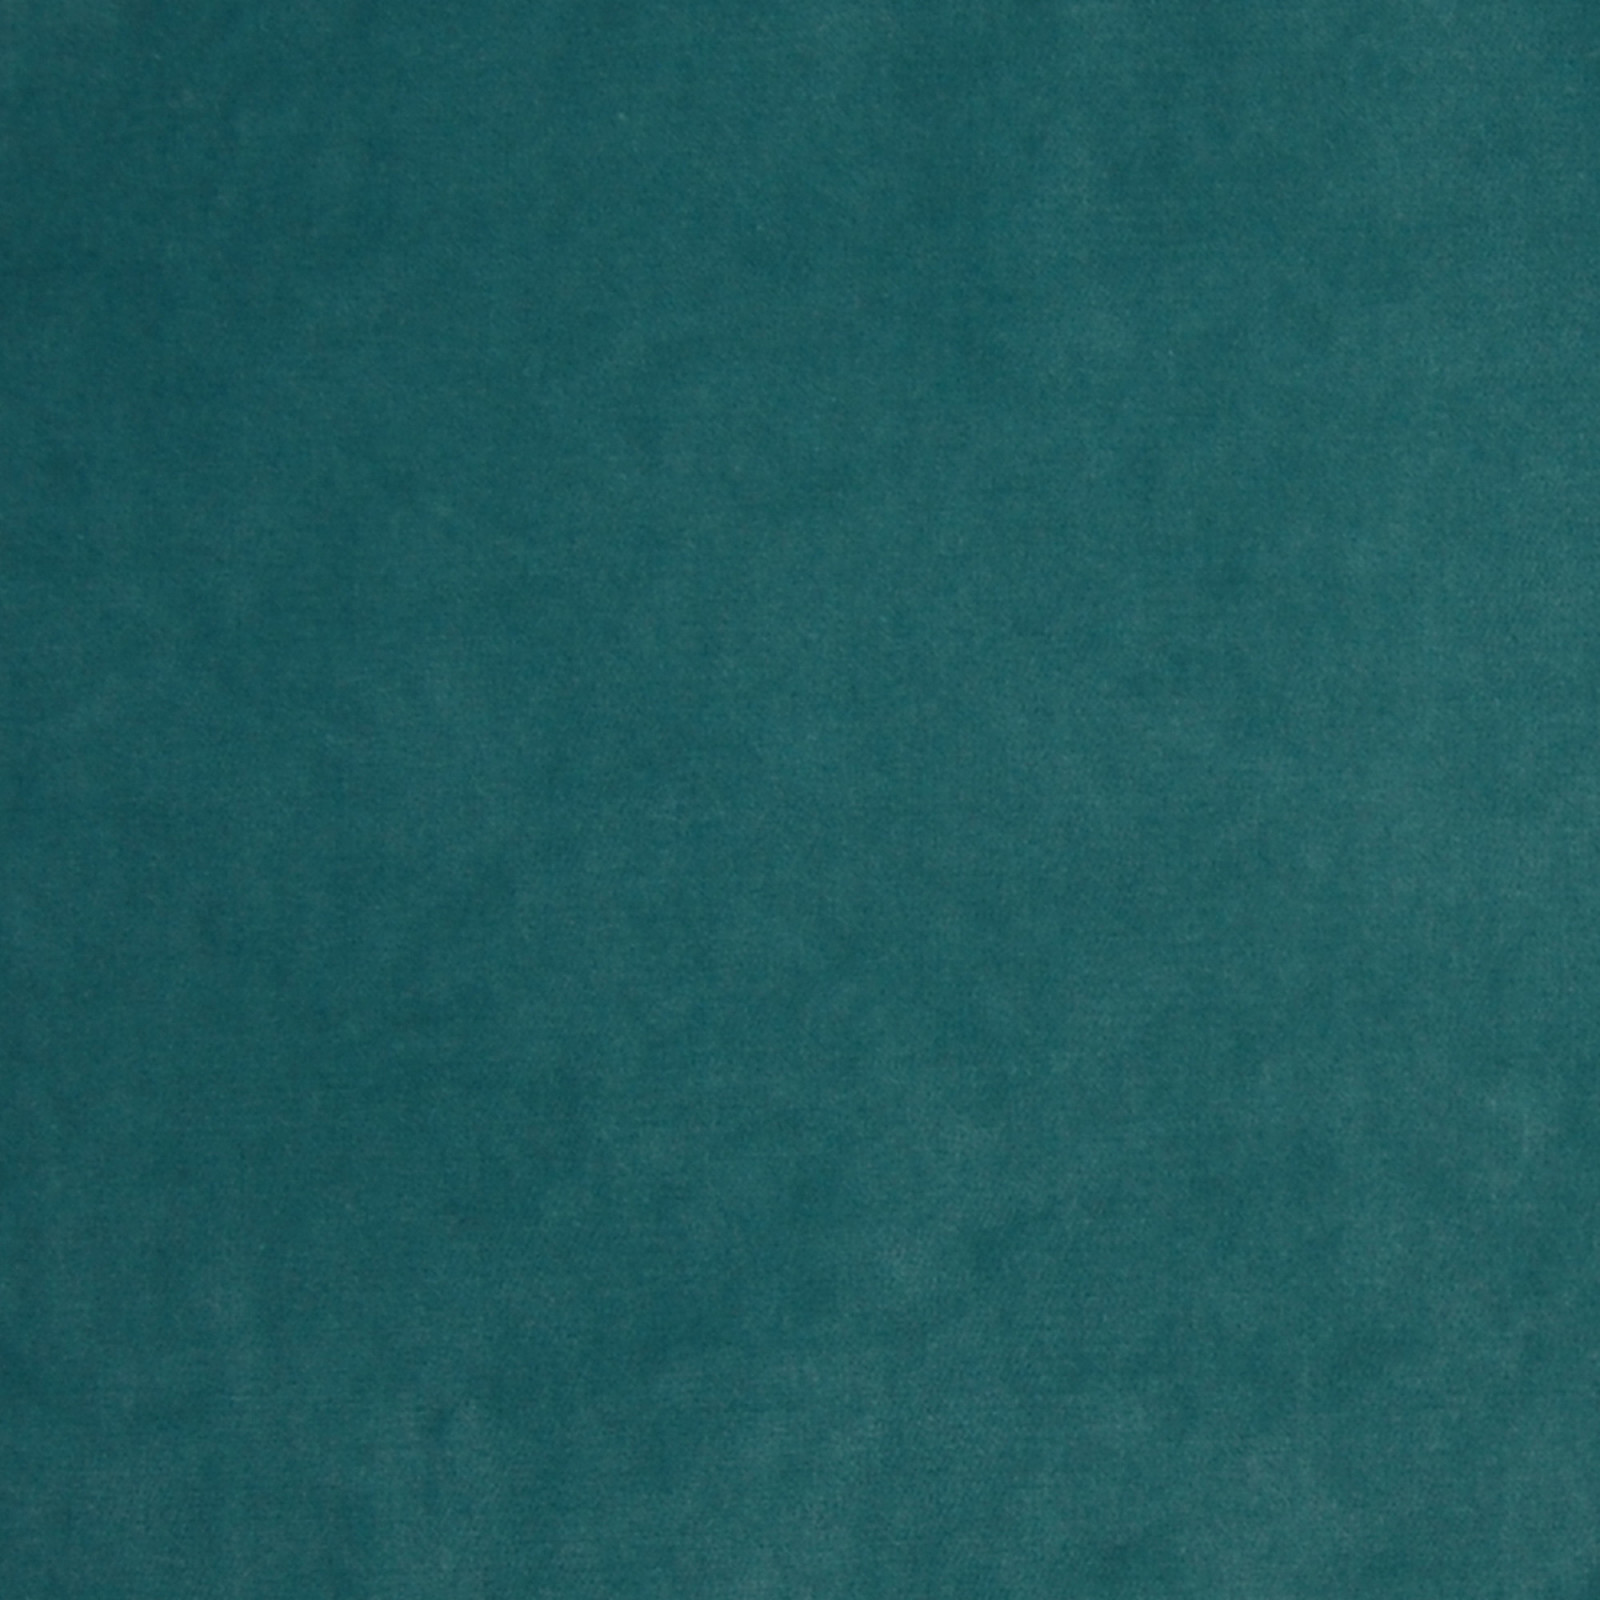 Teal Blue And Teal Solid Velvet Upholstery Fabric